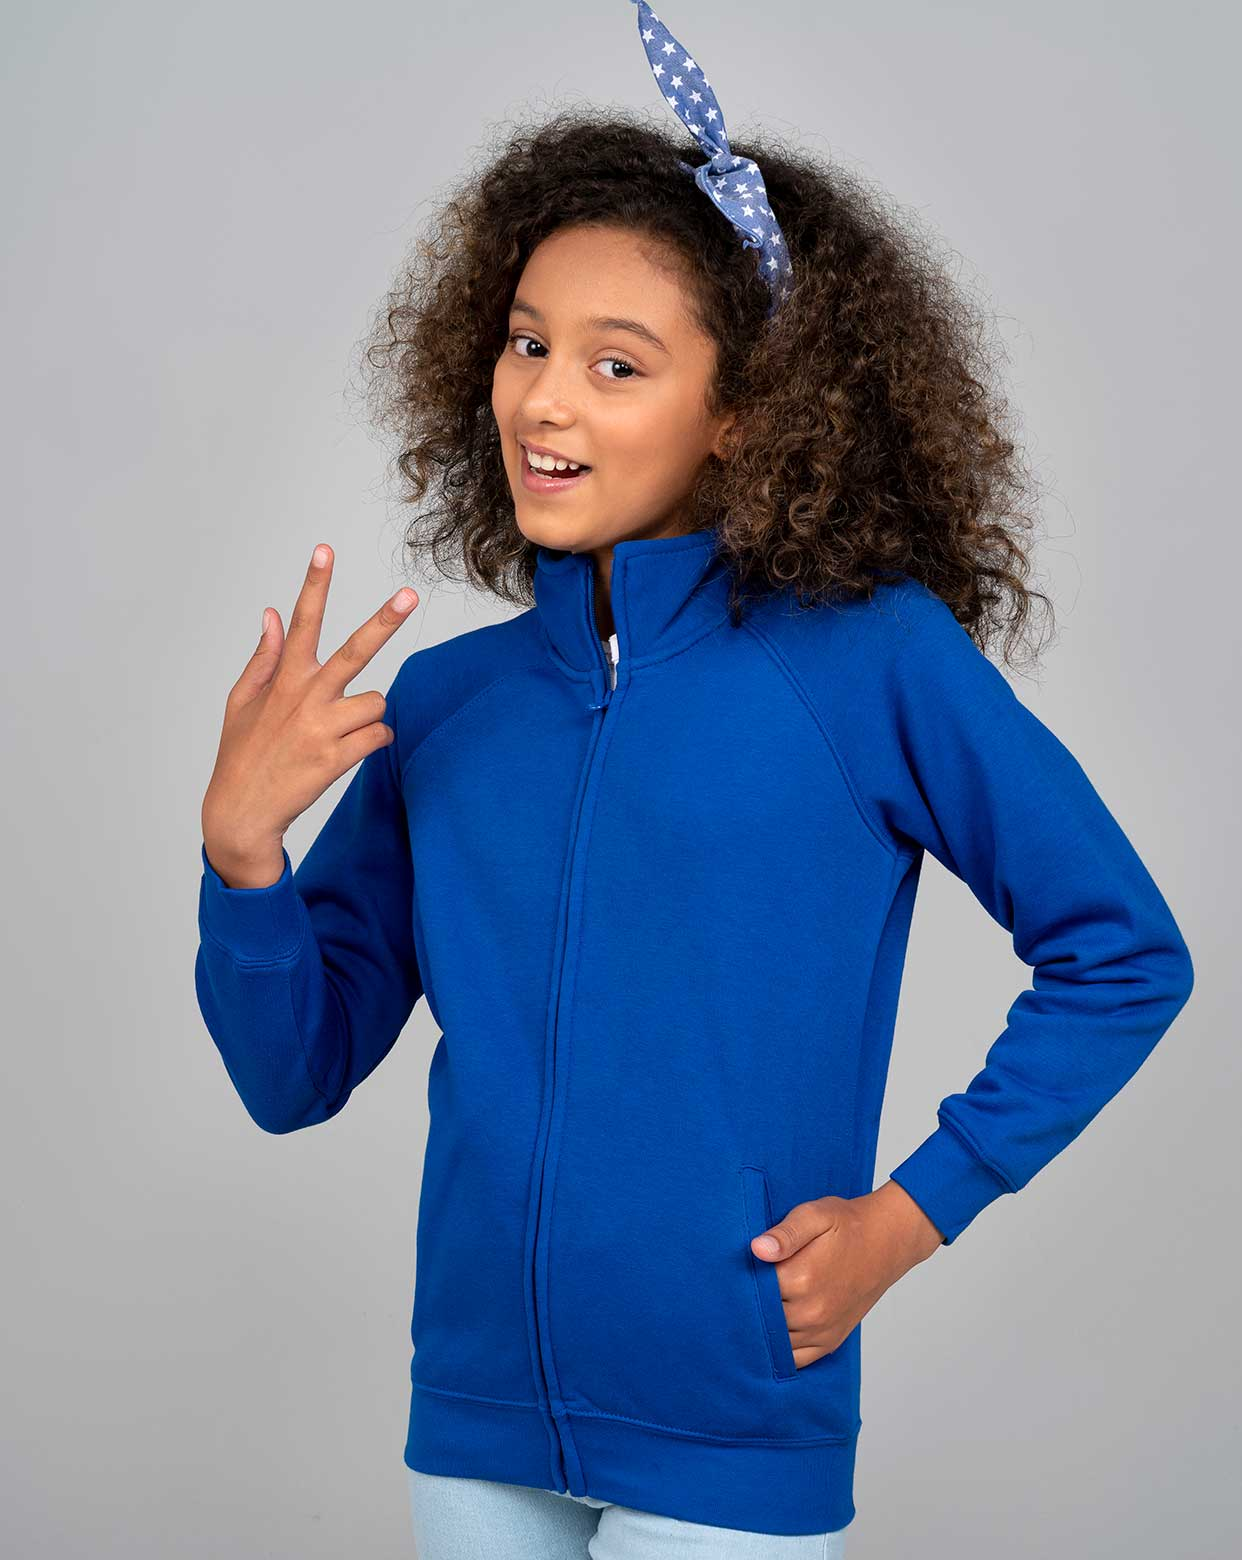 Kid Full Zip Sweatshirt - SWRKFUZIP